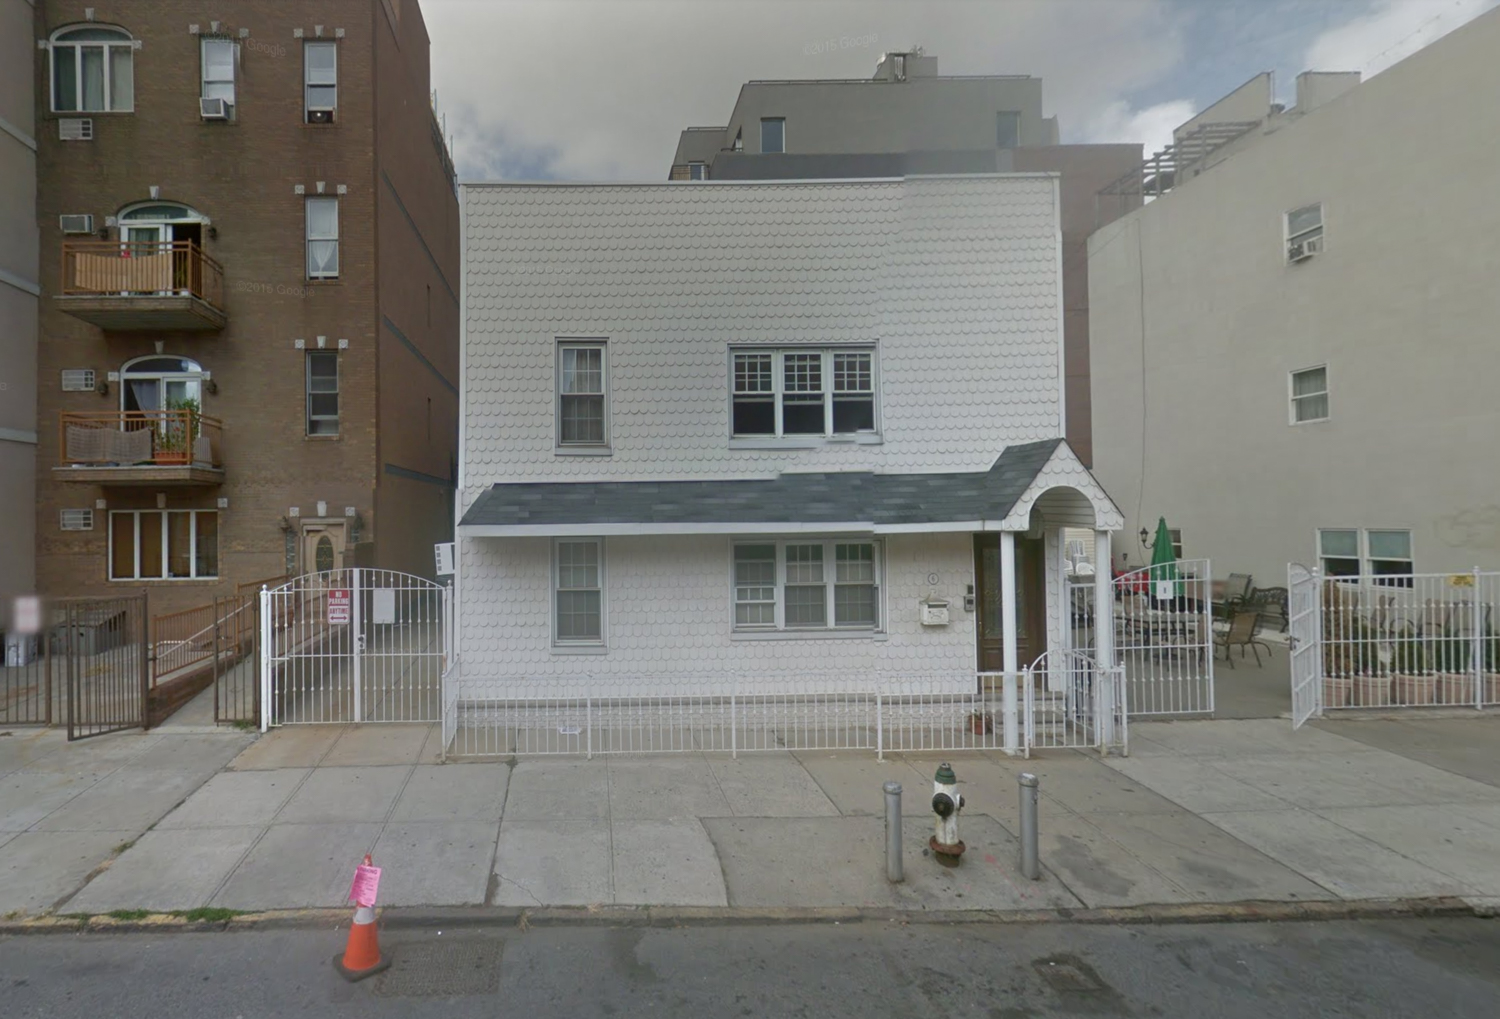 6 Havemeyer Street, via Google Maps